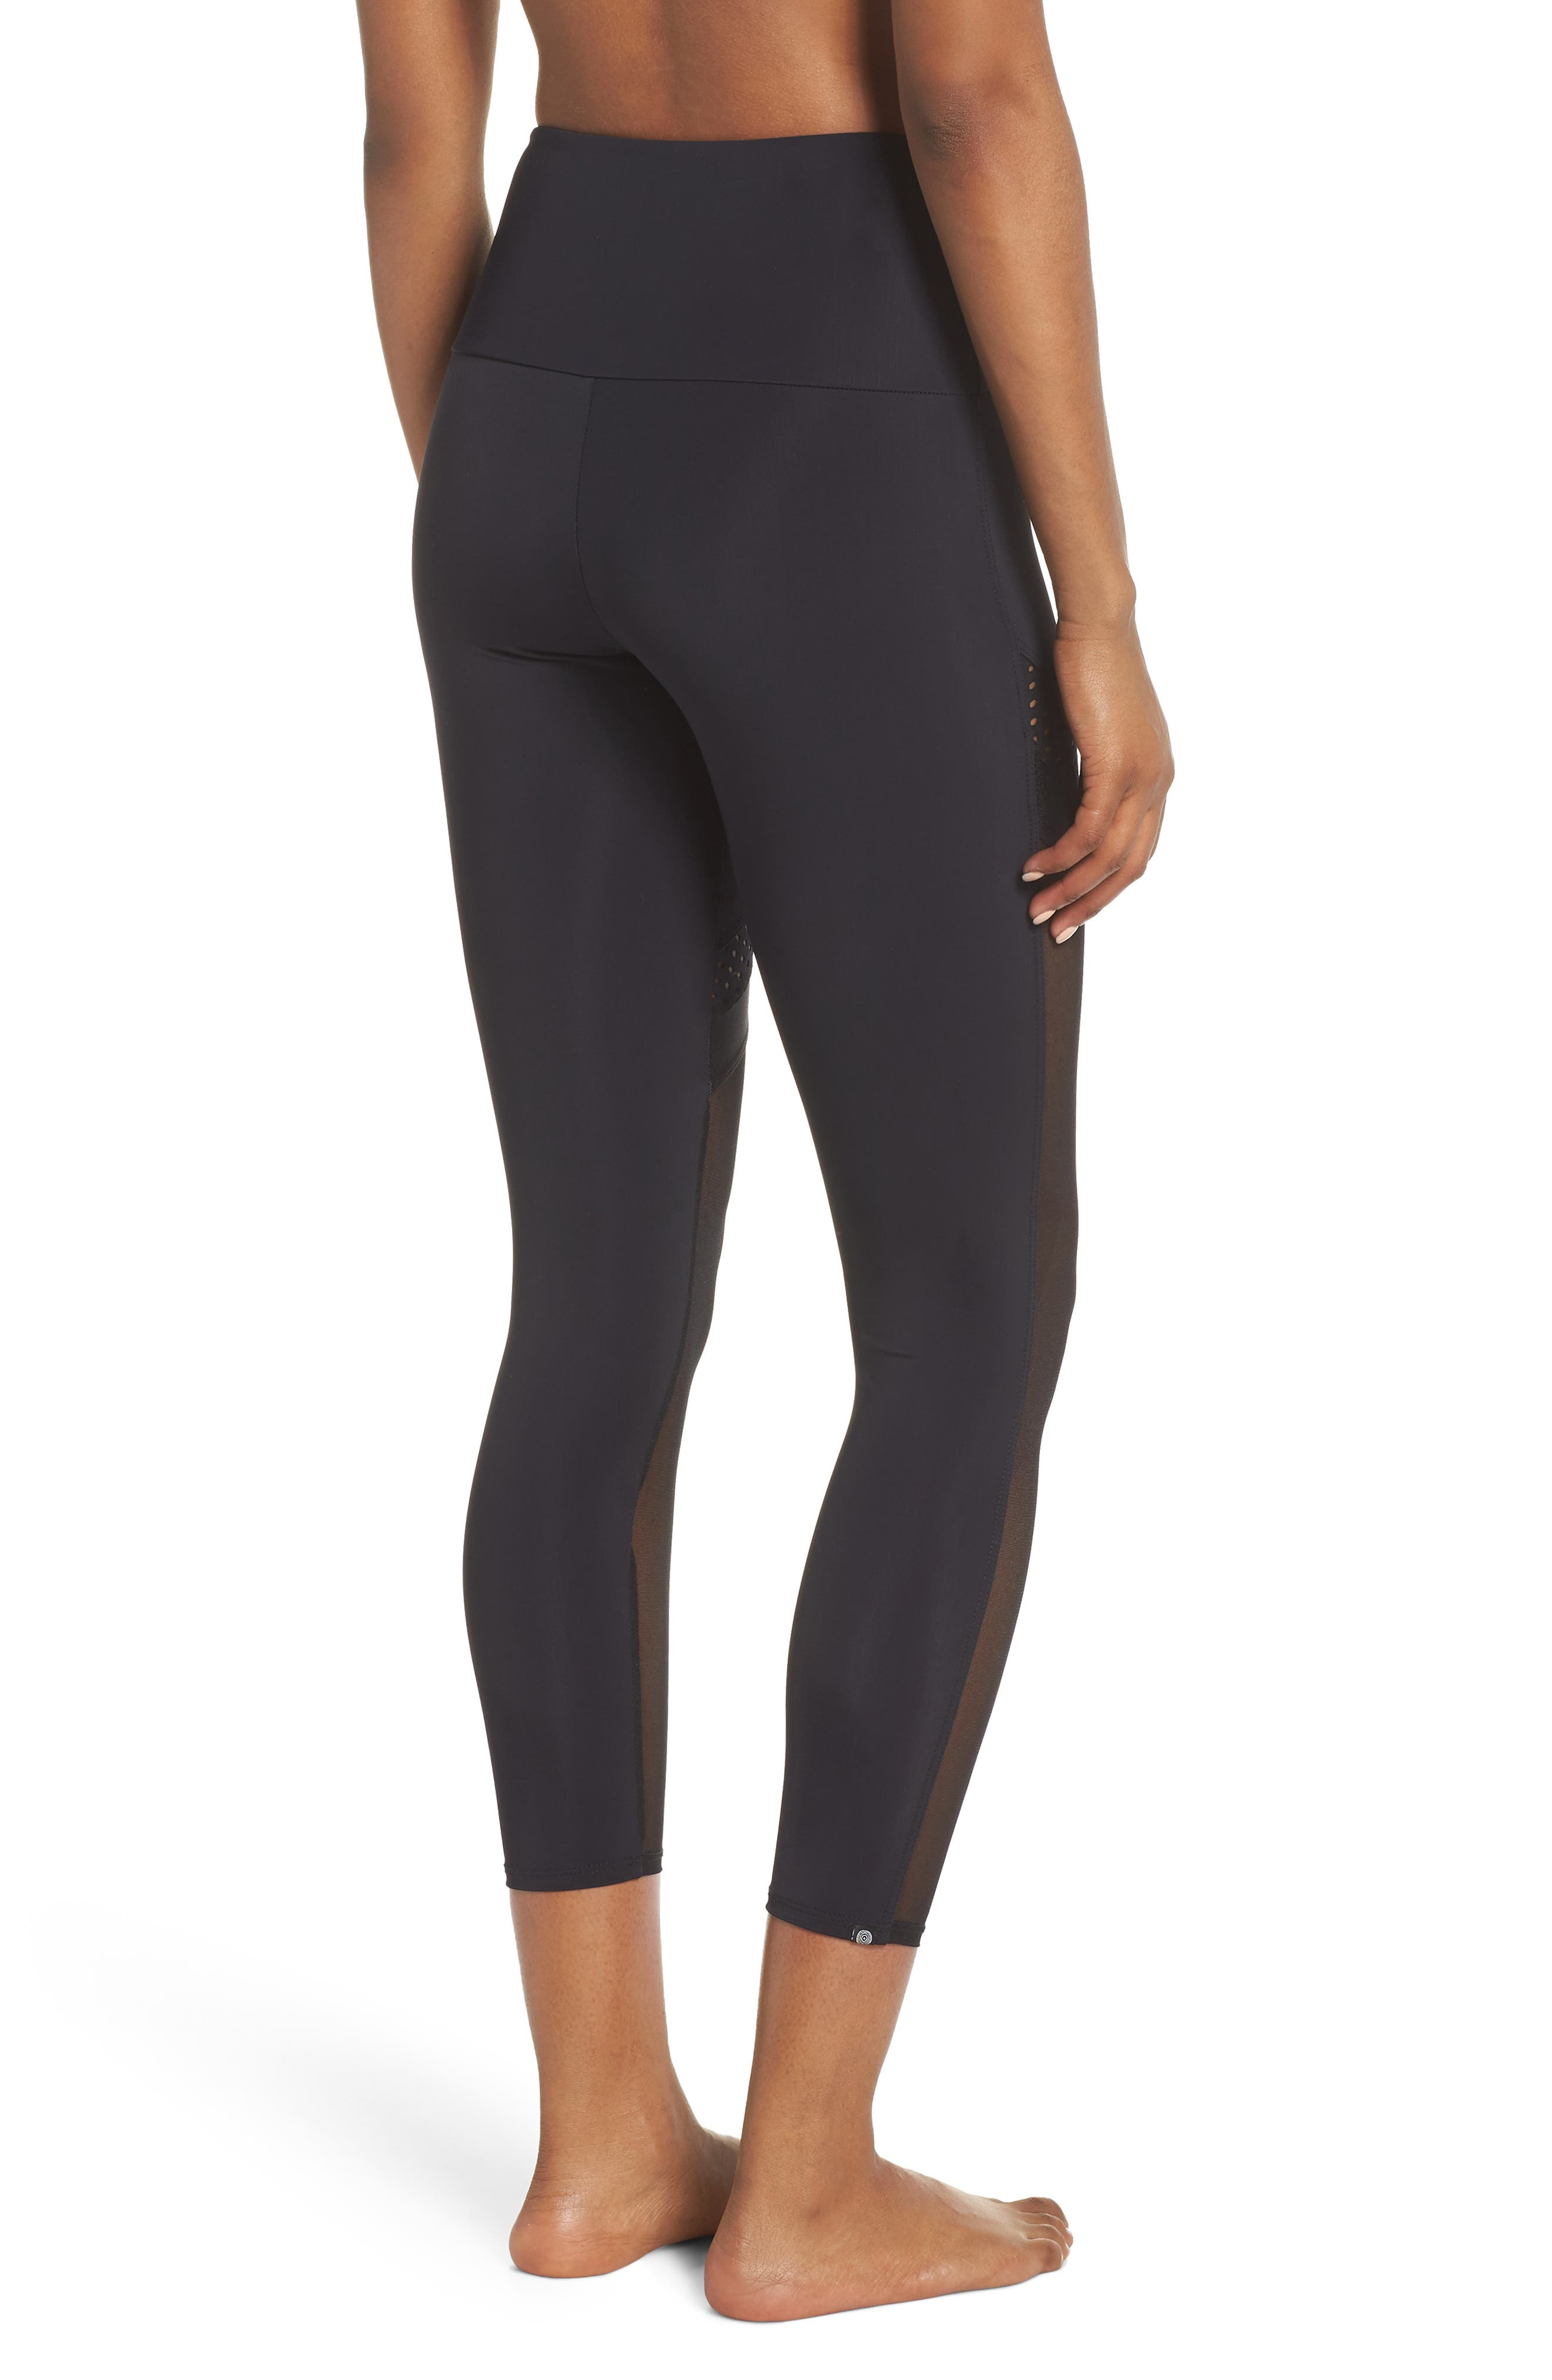 Chrome Leggings,                             Alternate thumbnail 2, color,                             Black